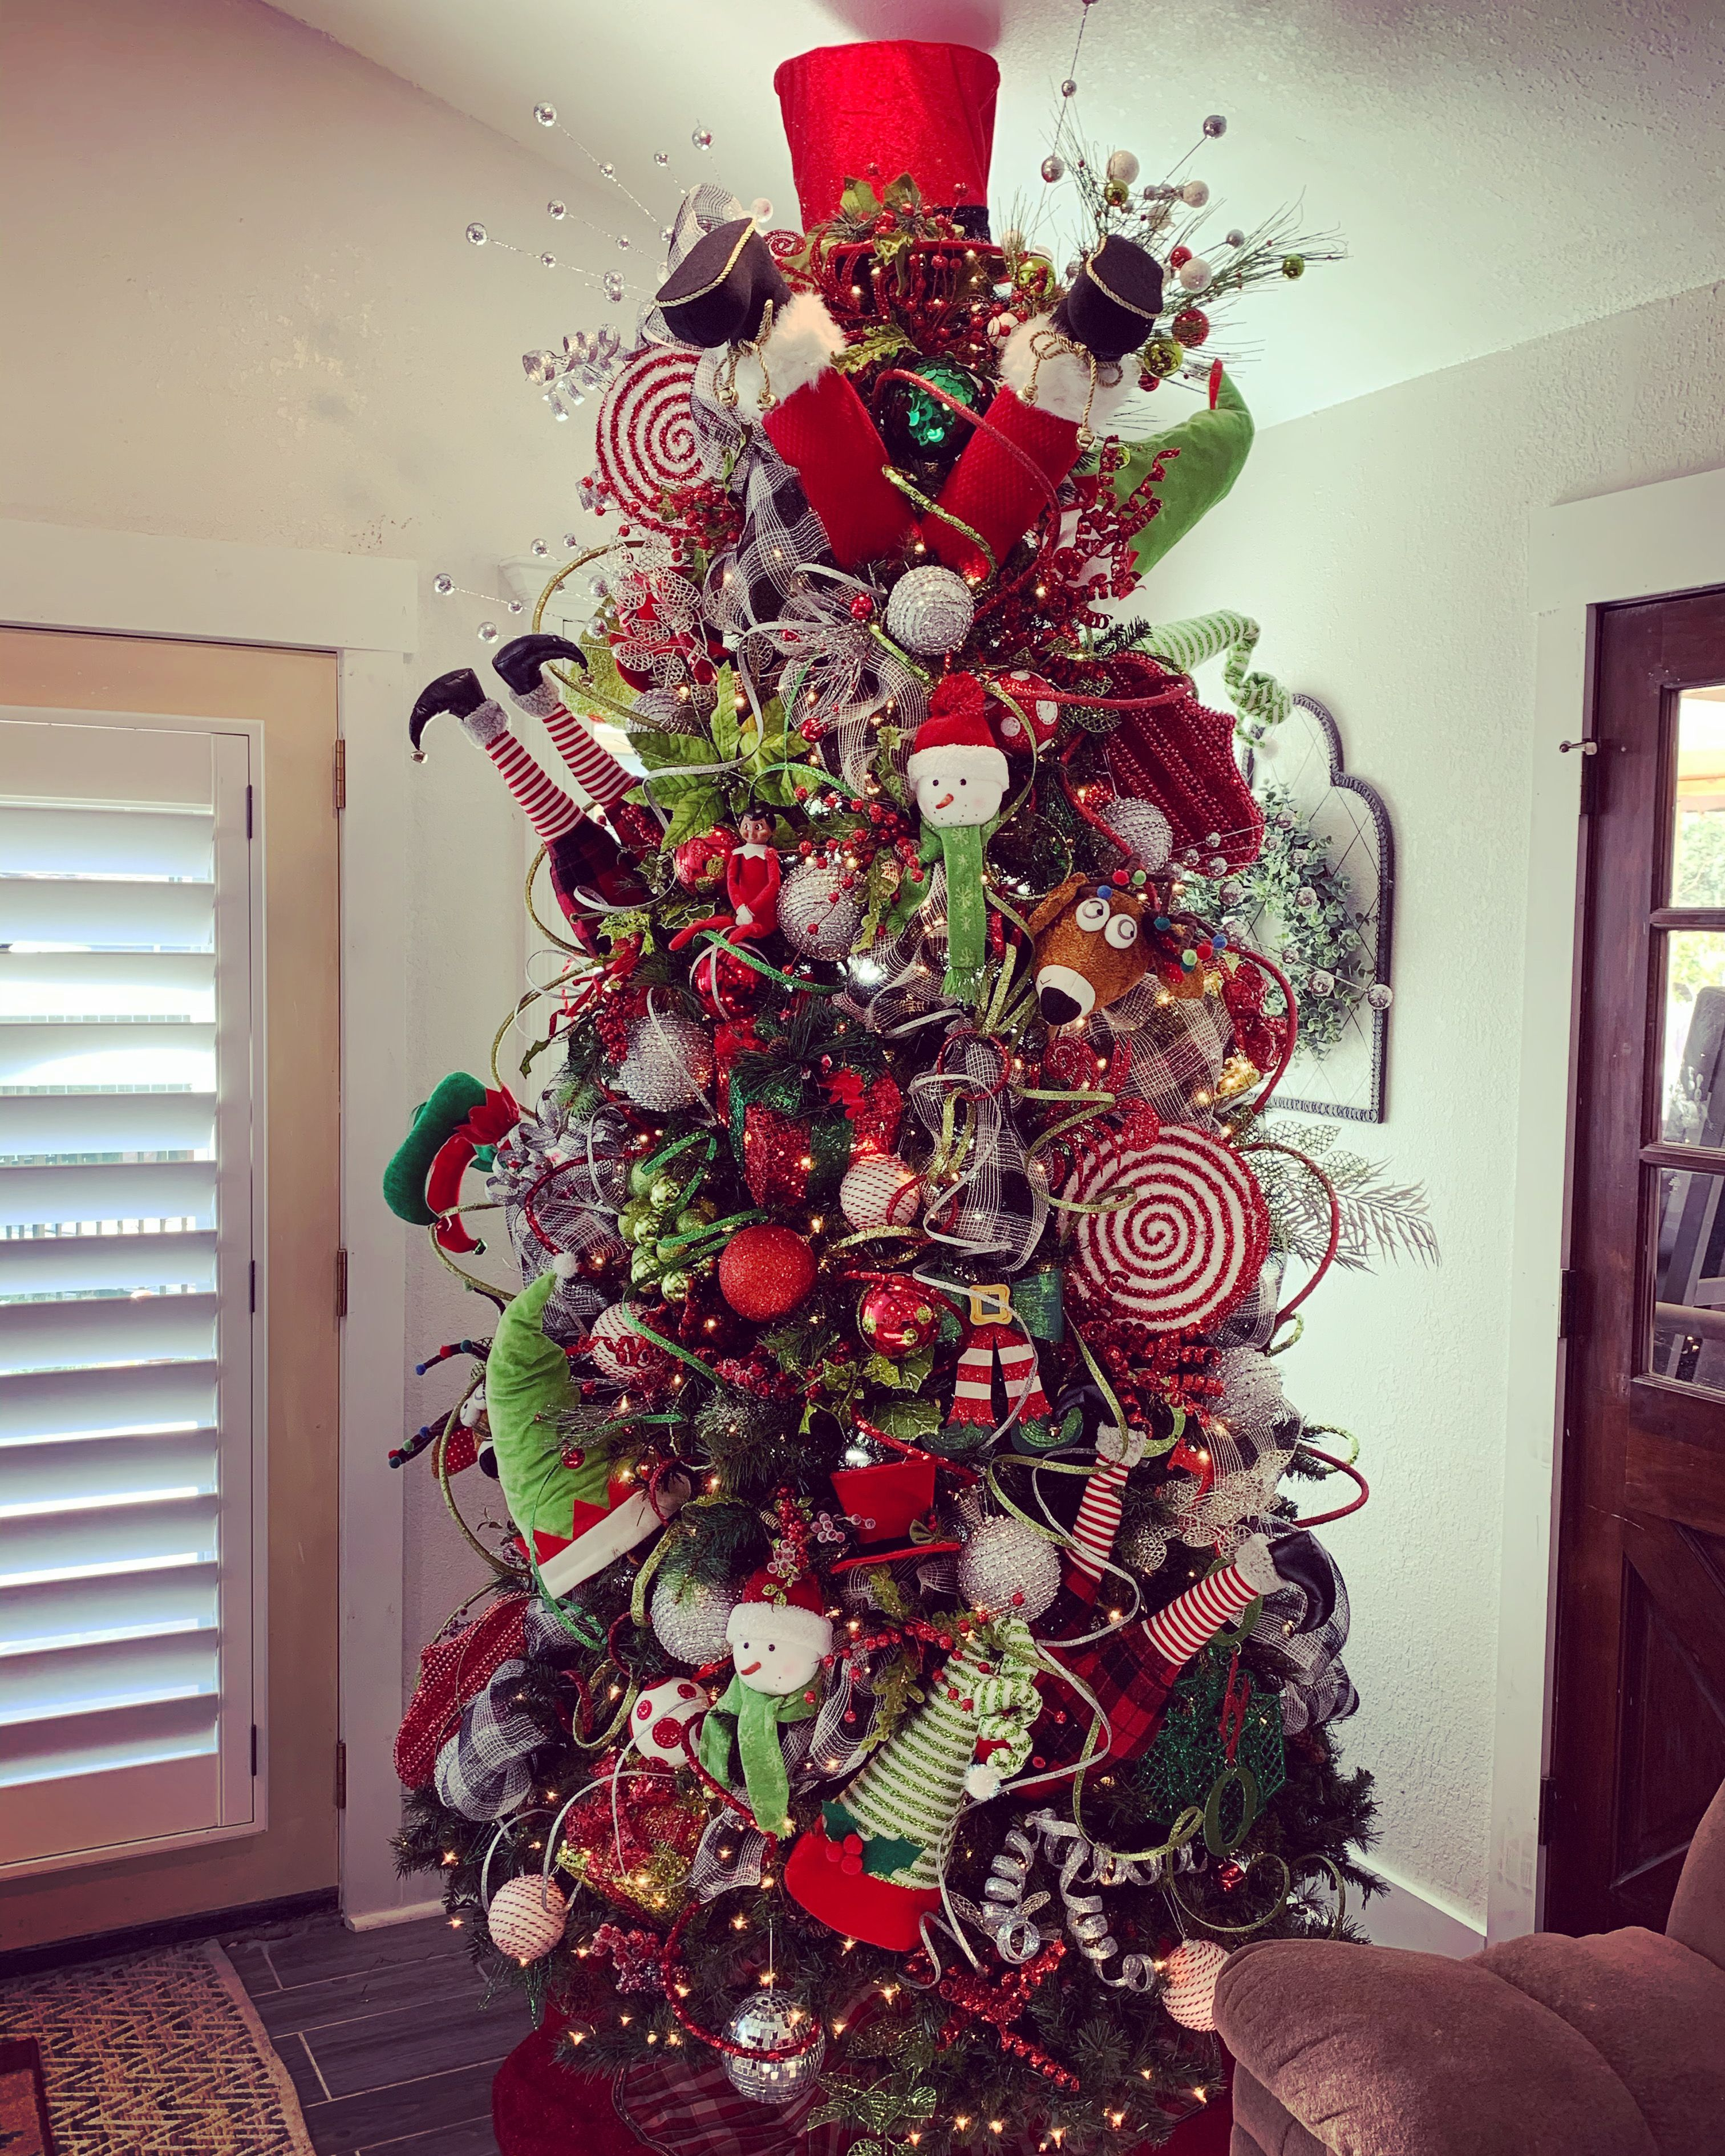 Santa Sleigh Crashed Into The Tree Fun Crazy Christmas Tree Shimmering Wired Ribbon Loomineb Cool Christmas Trees Christmas Tree Decorations Christmas Tree